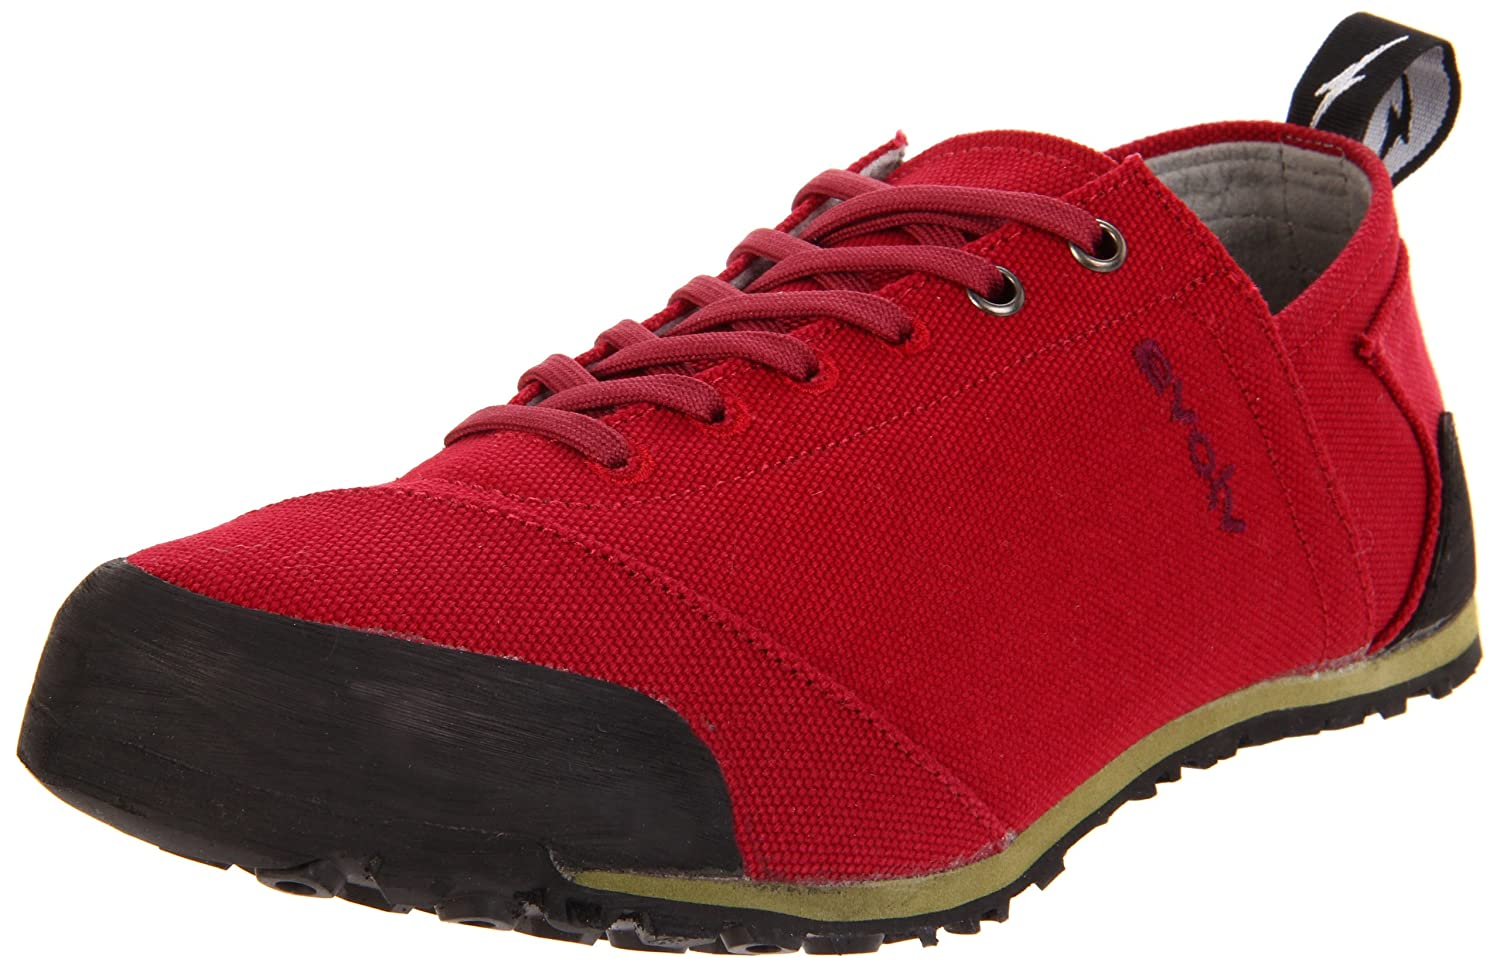 Evolv Men's Cruzer Approach Shoe B006475Q5C 4 M US|Red